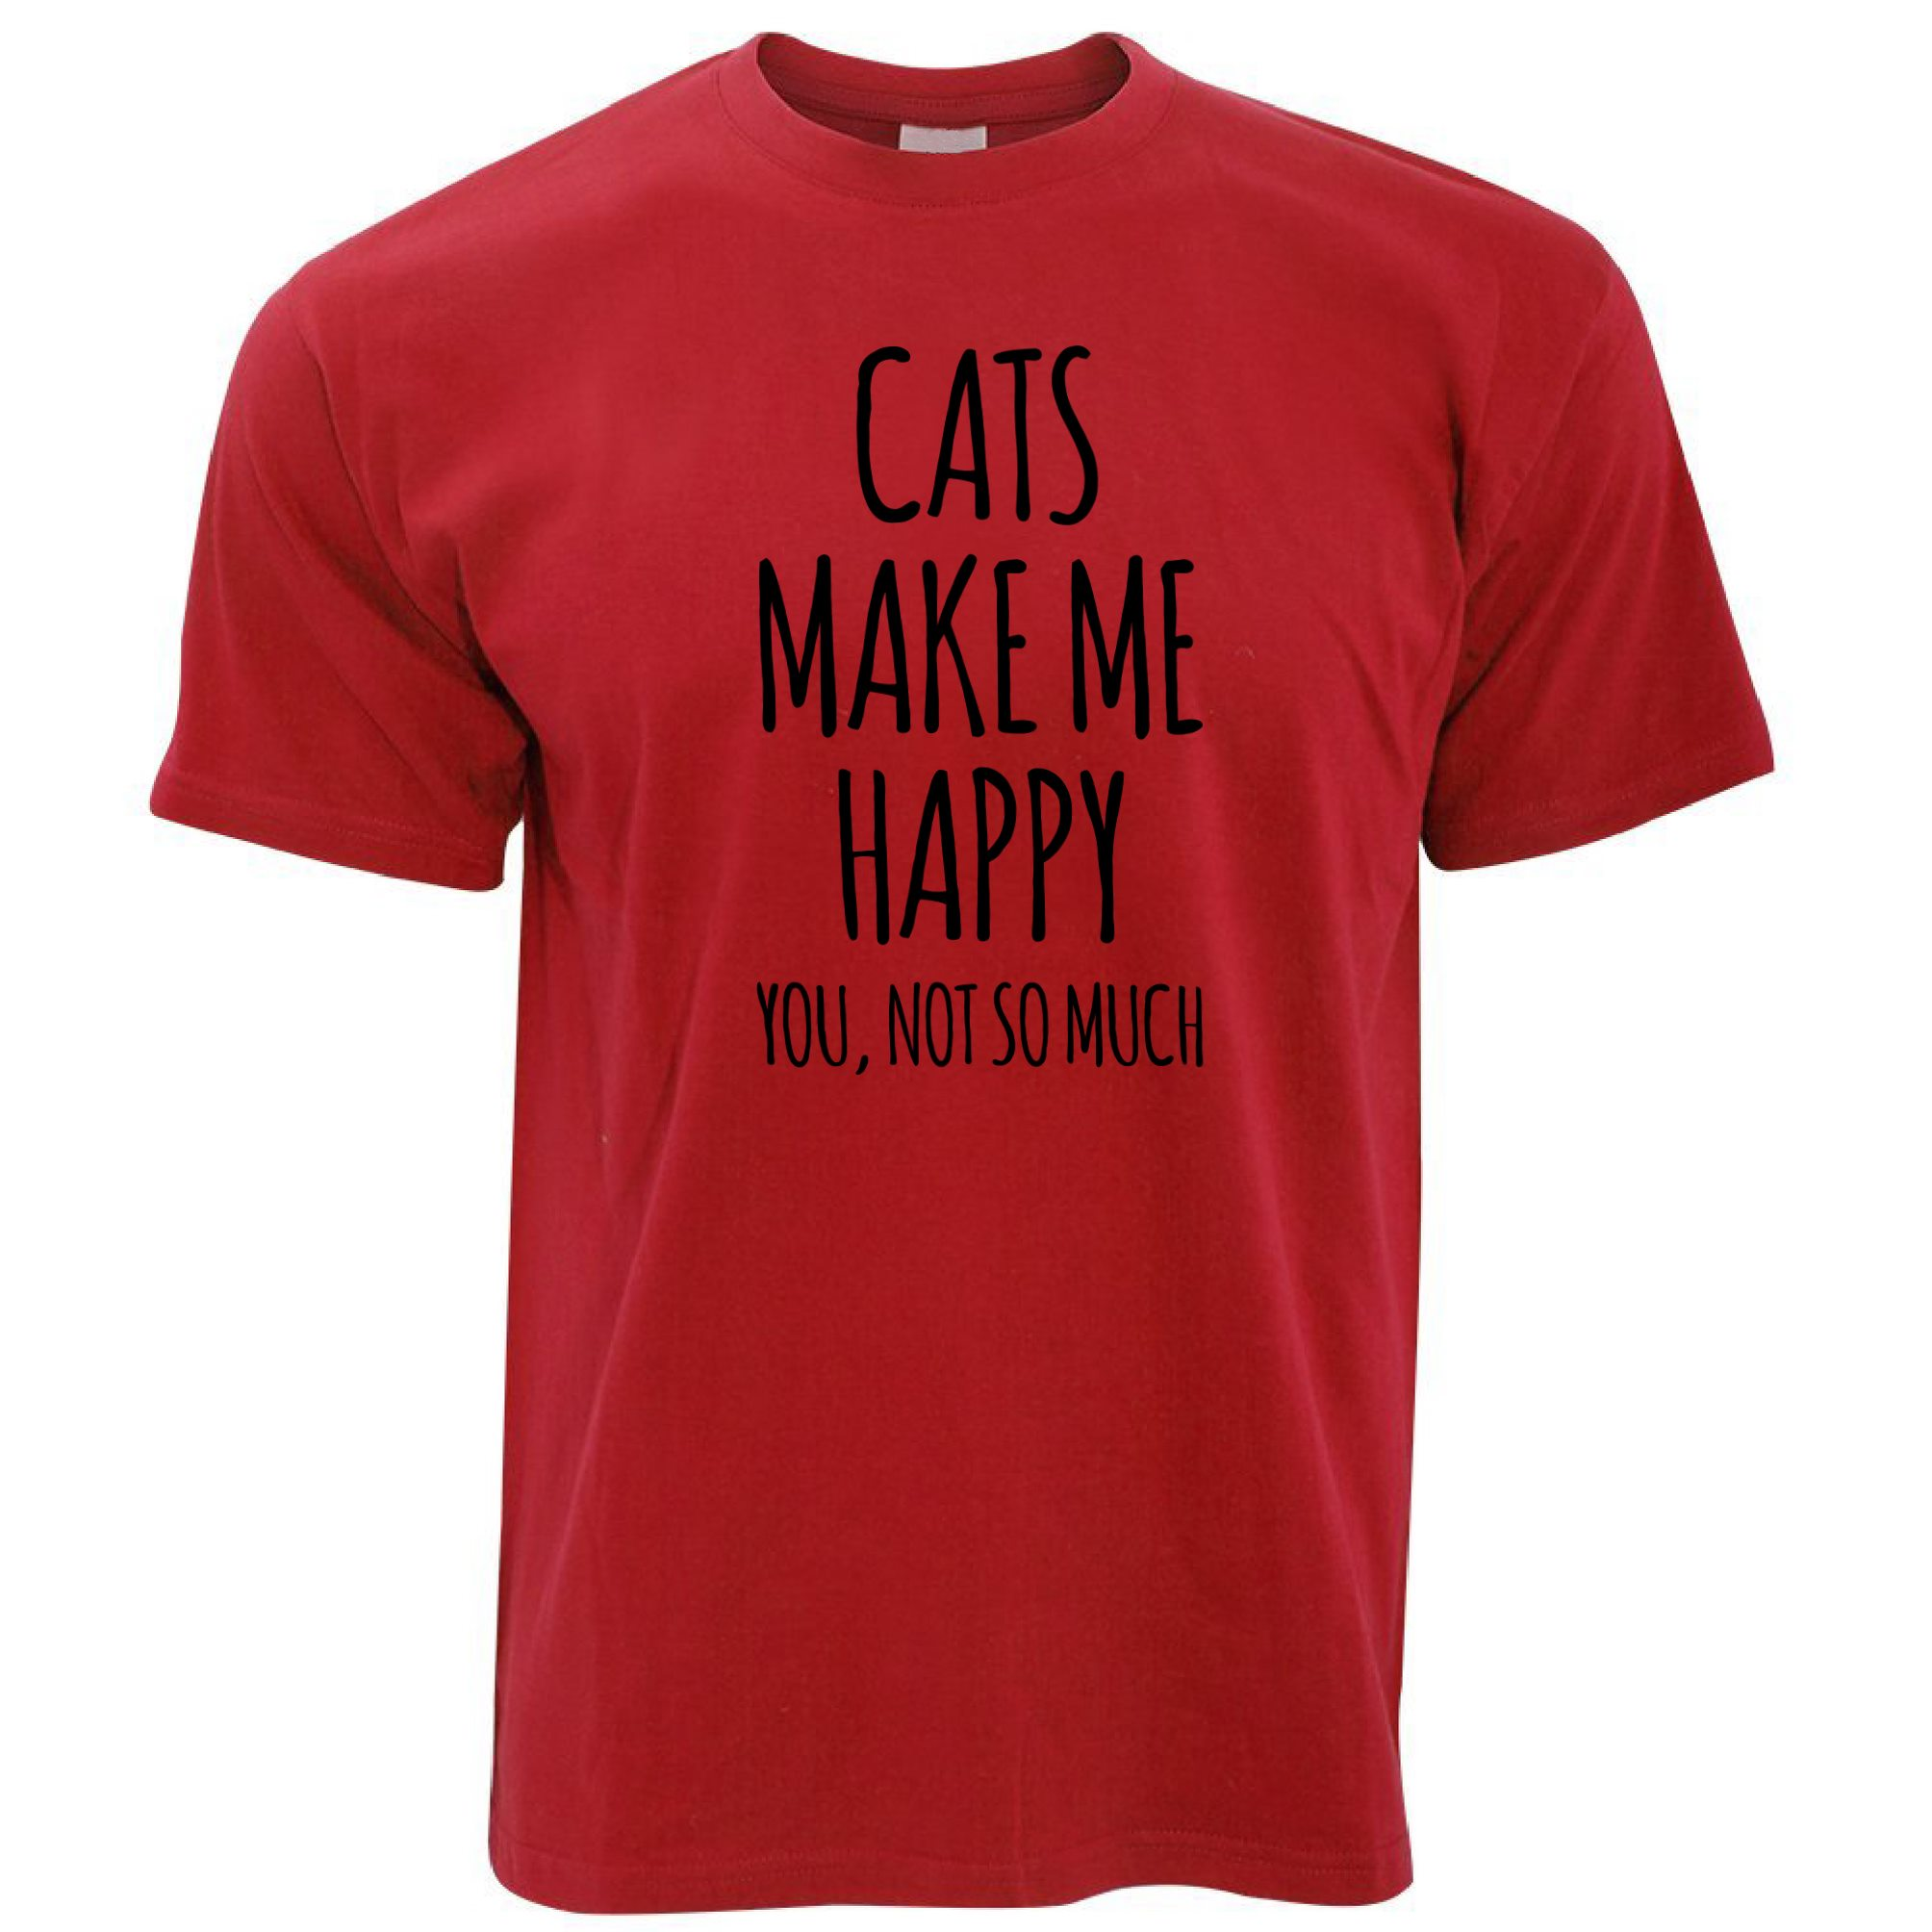 Not So Much Pet Lover Joke Novelty T Shirt Cats Make Me Happy You